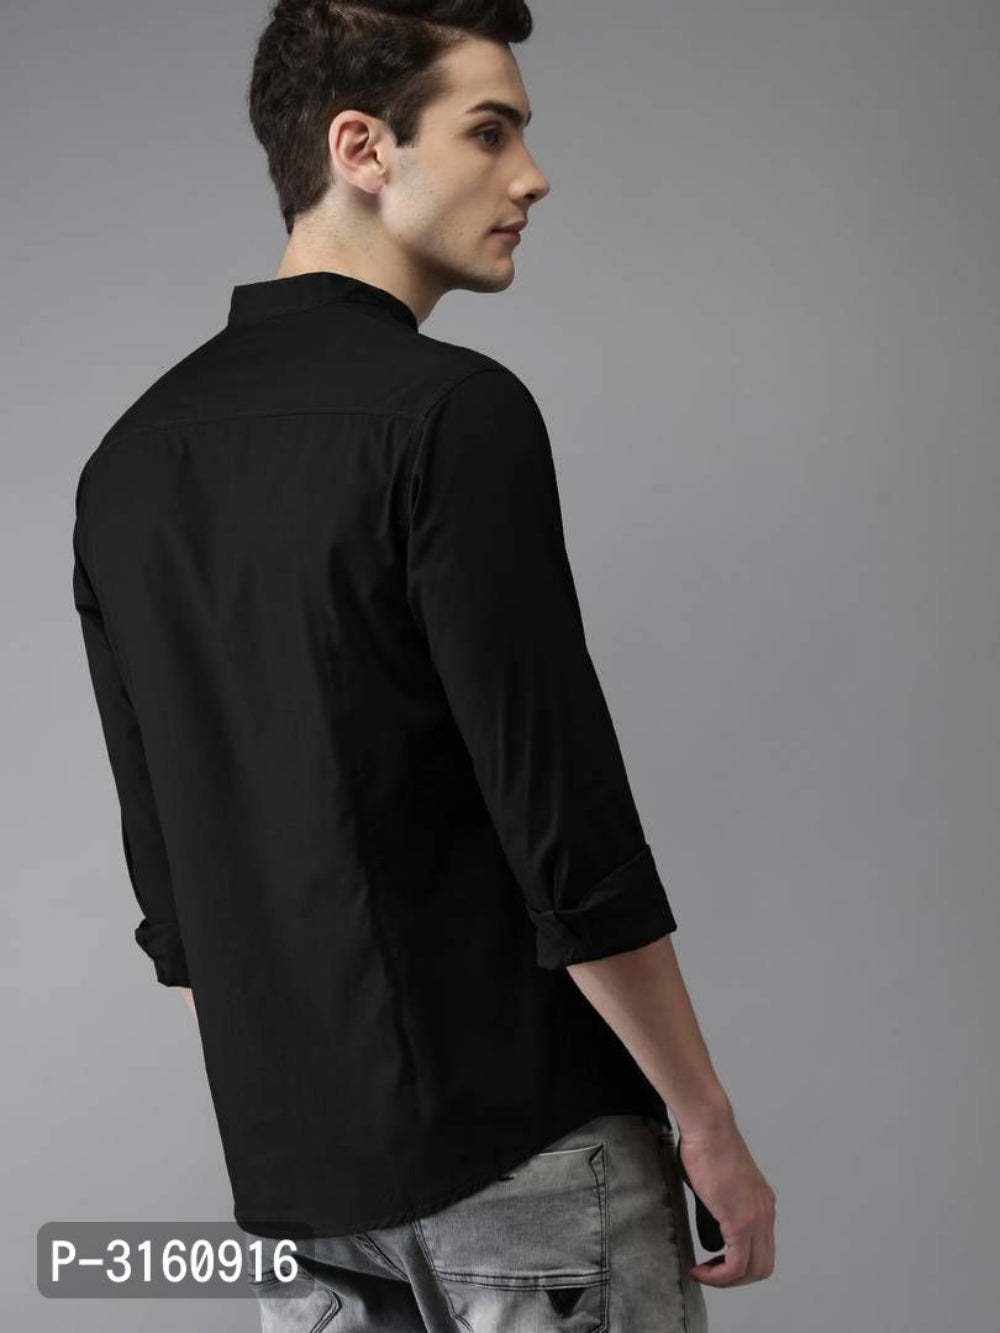 Coal Black Solid Long Sleeve Shirt